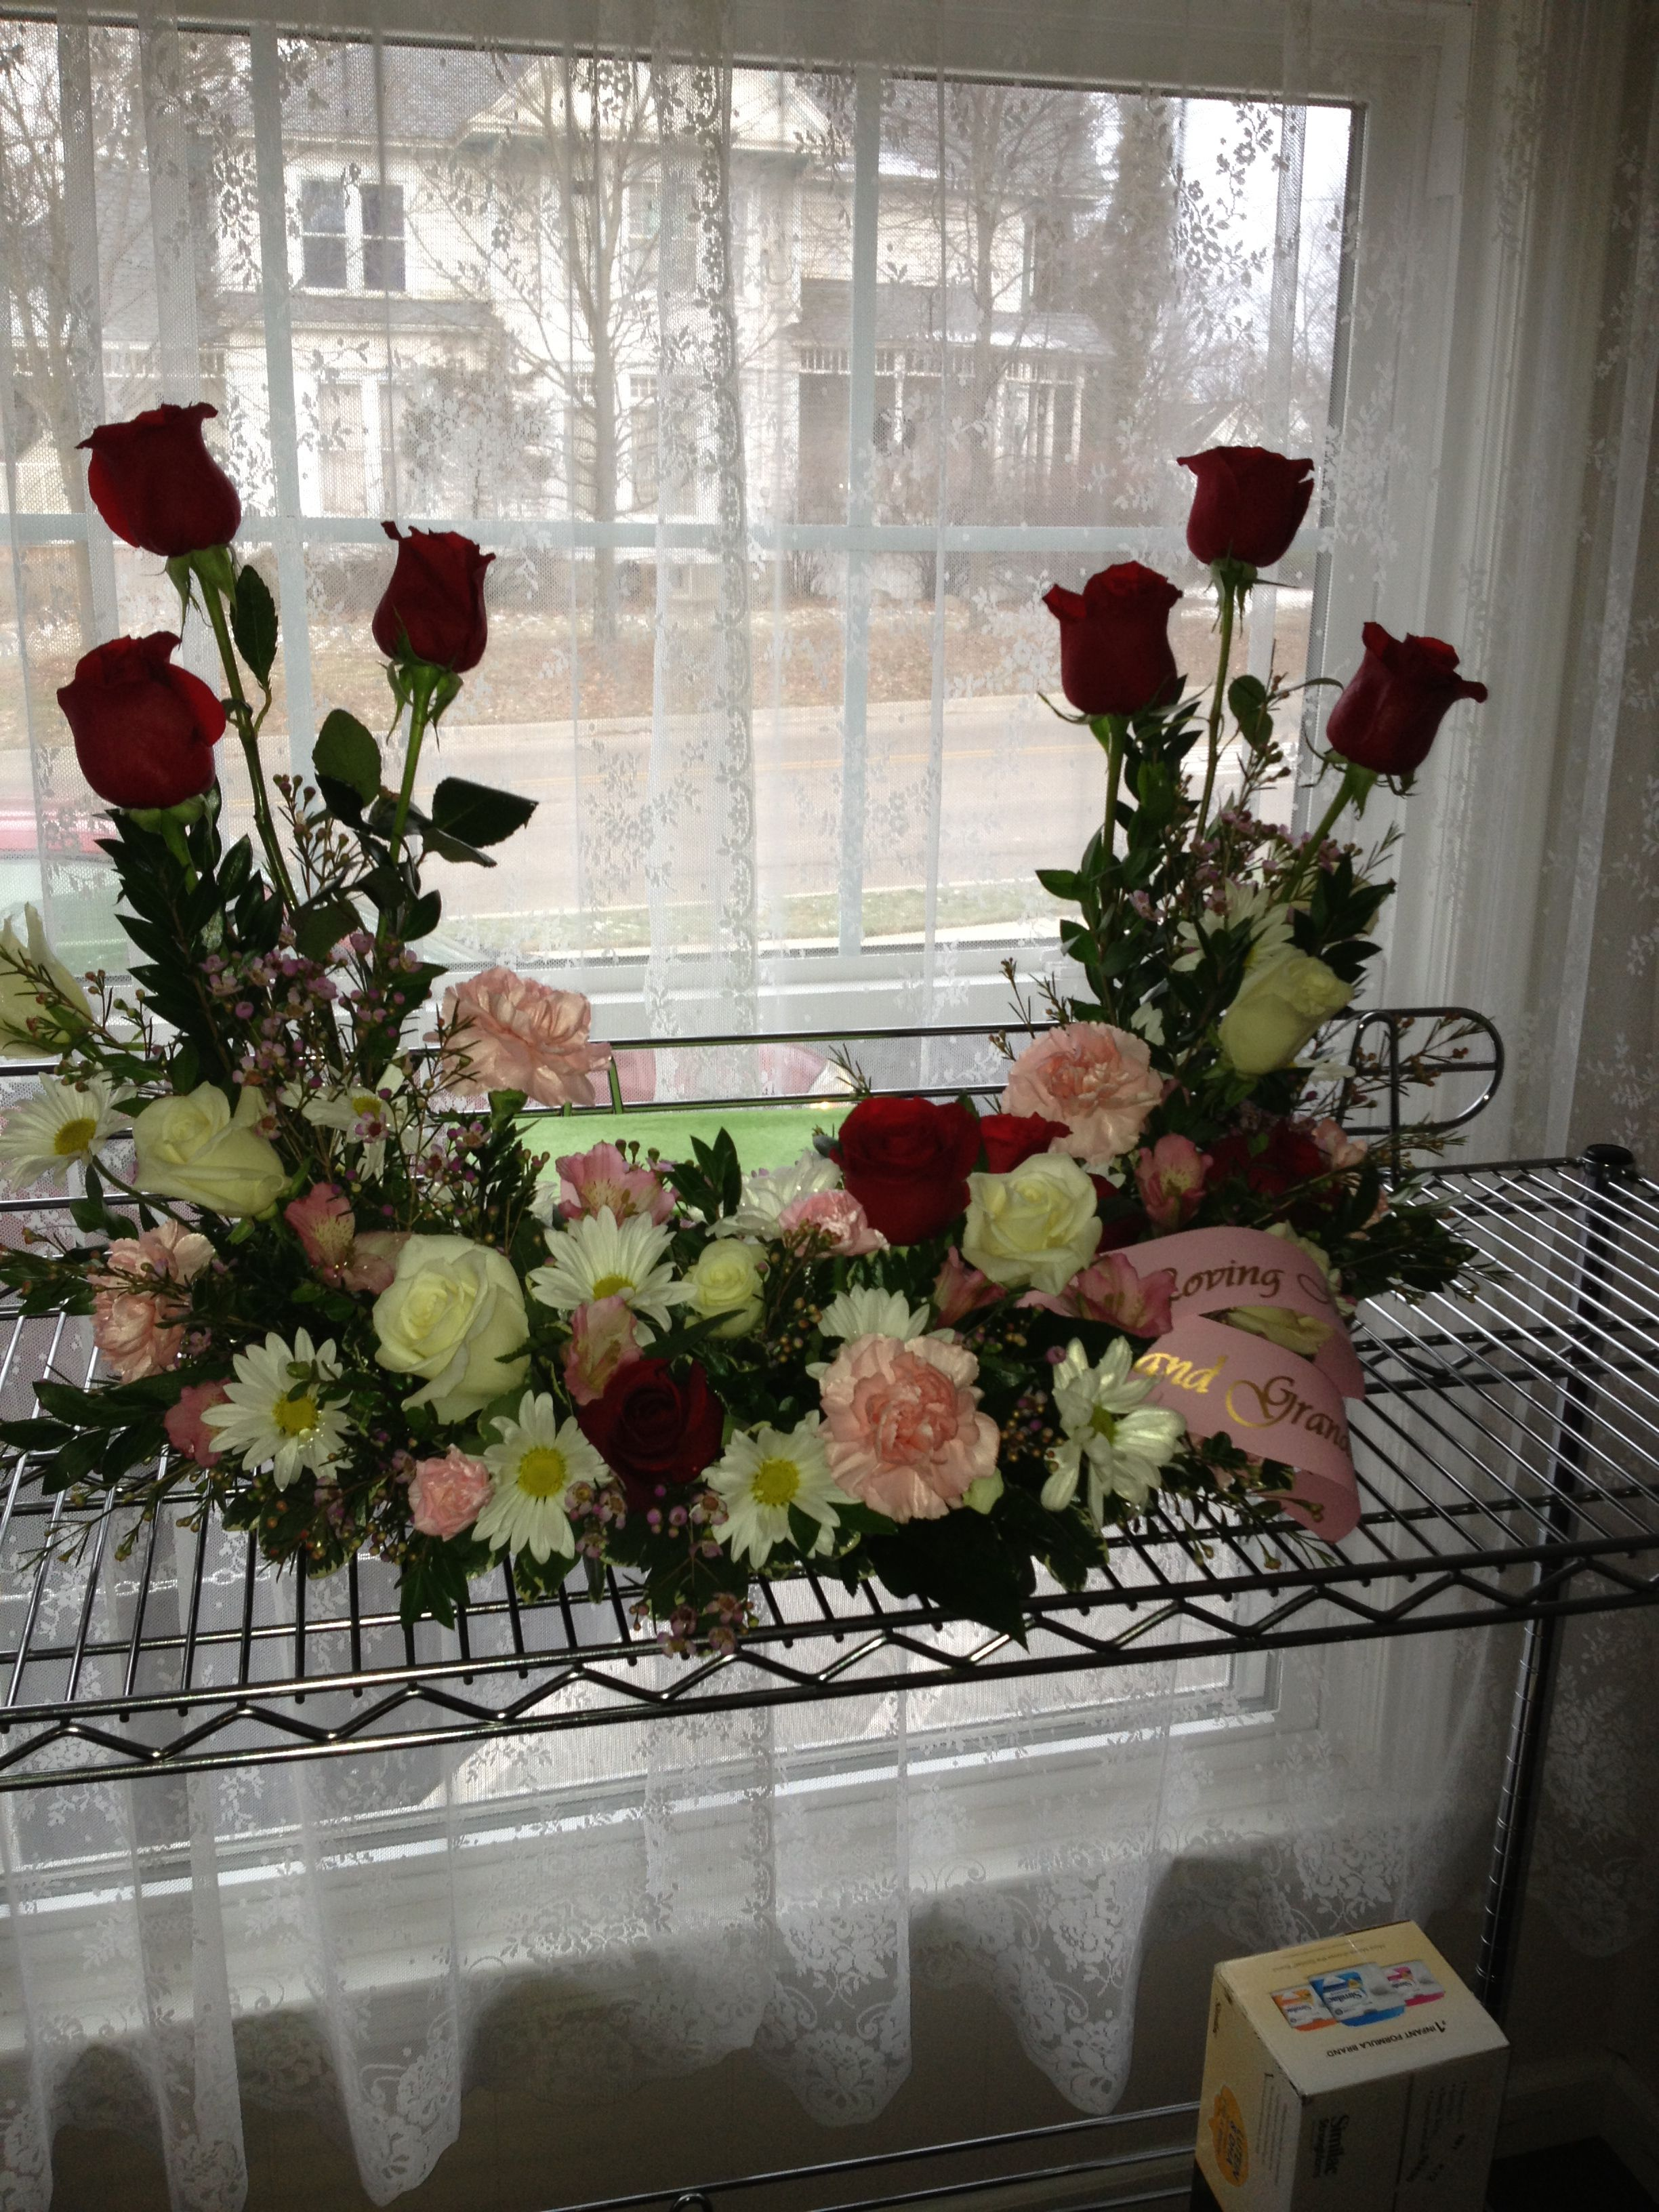 Perfect for a Memorial service, this beautiful arrangement